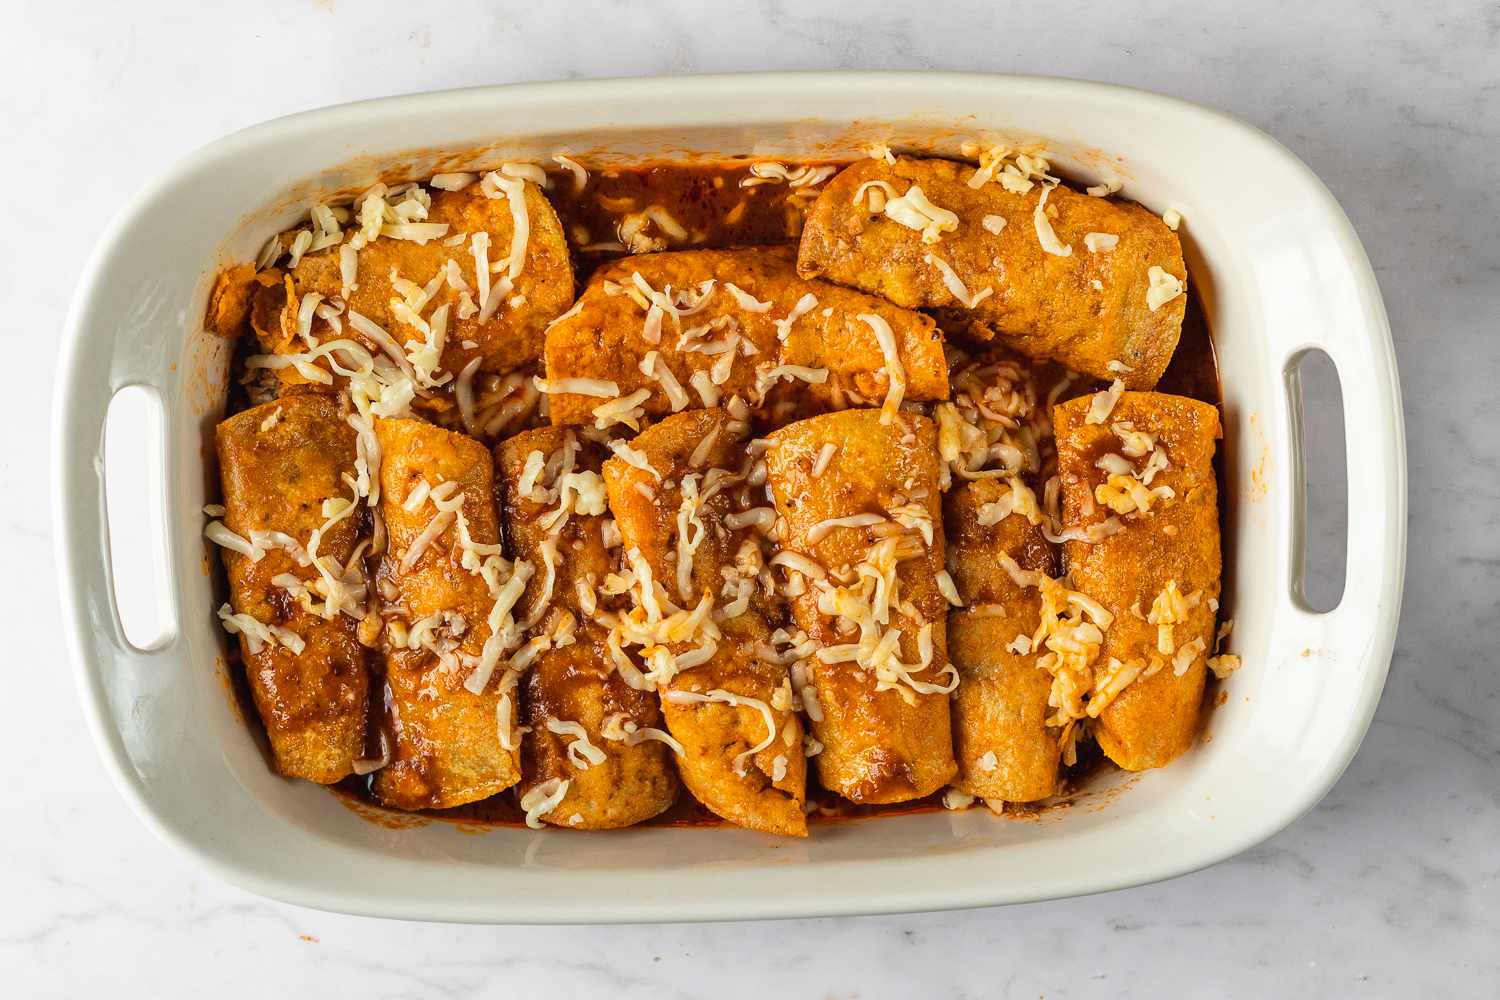 Pork Enchiladas in a baking dish with cheese on top